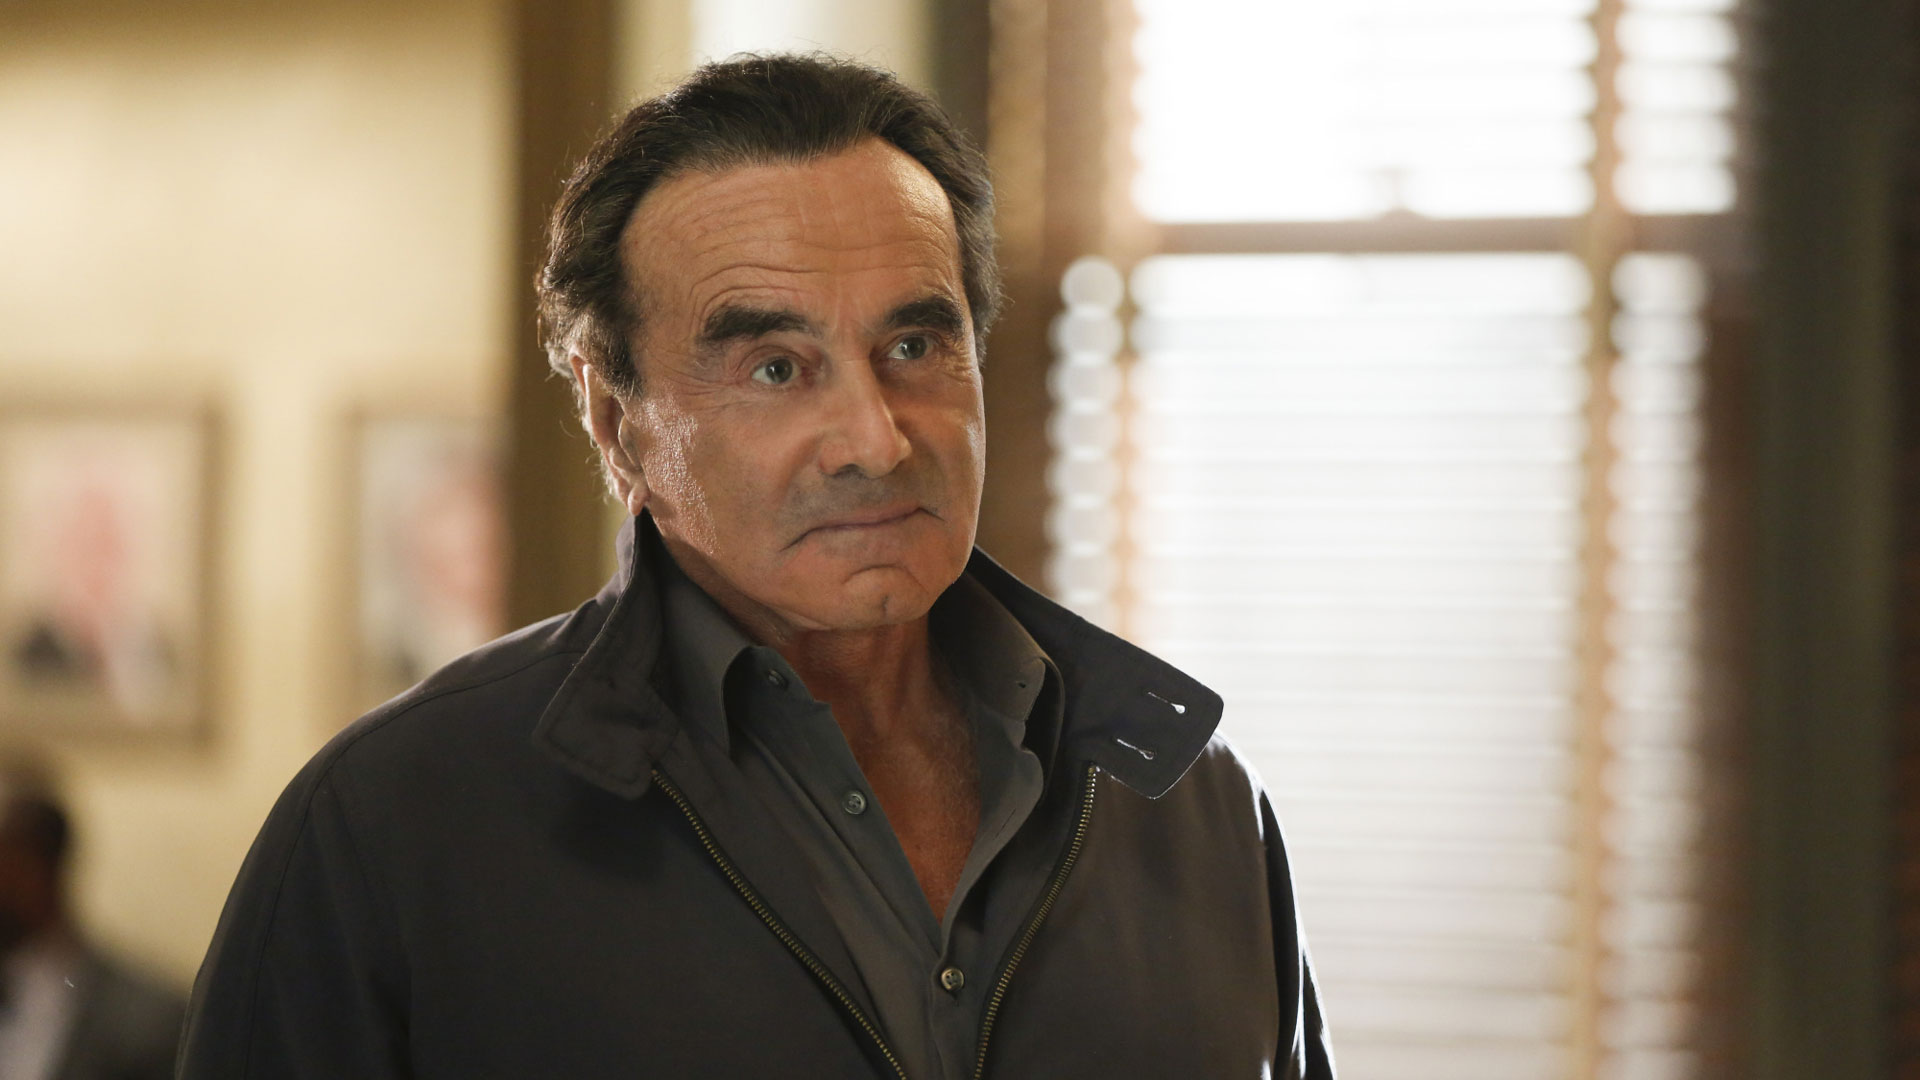 Dan Hedaya as Vincent Rella